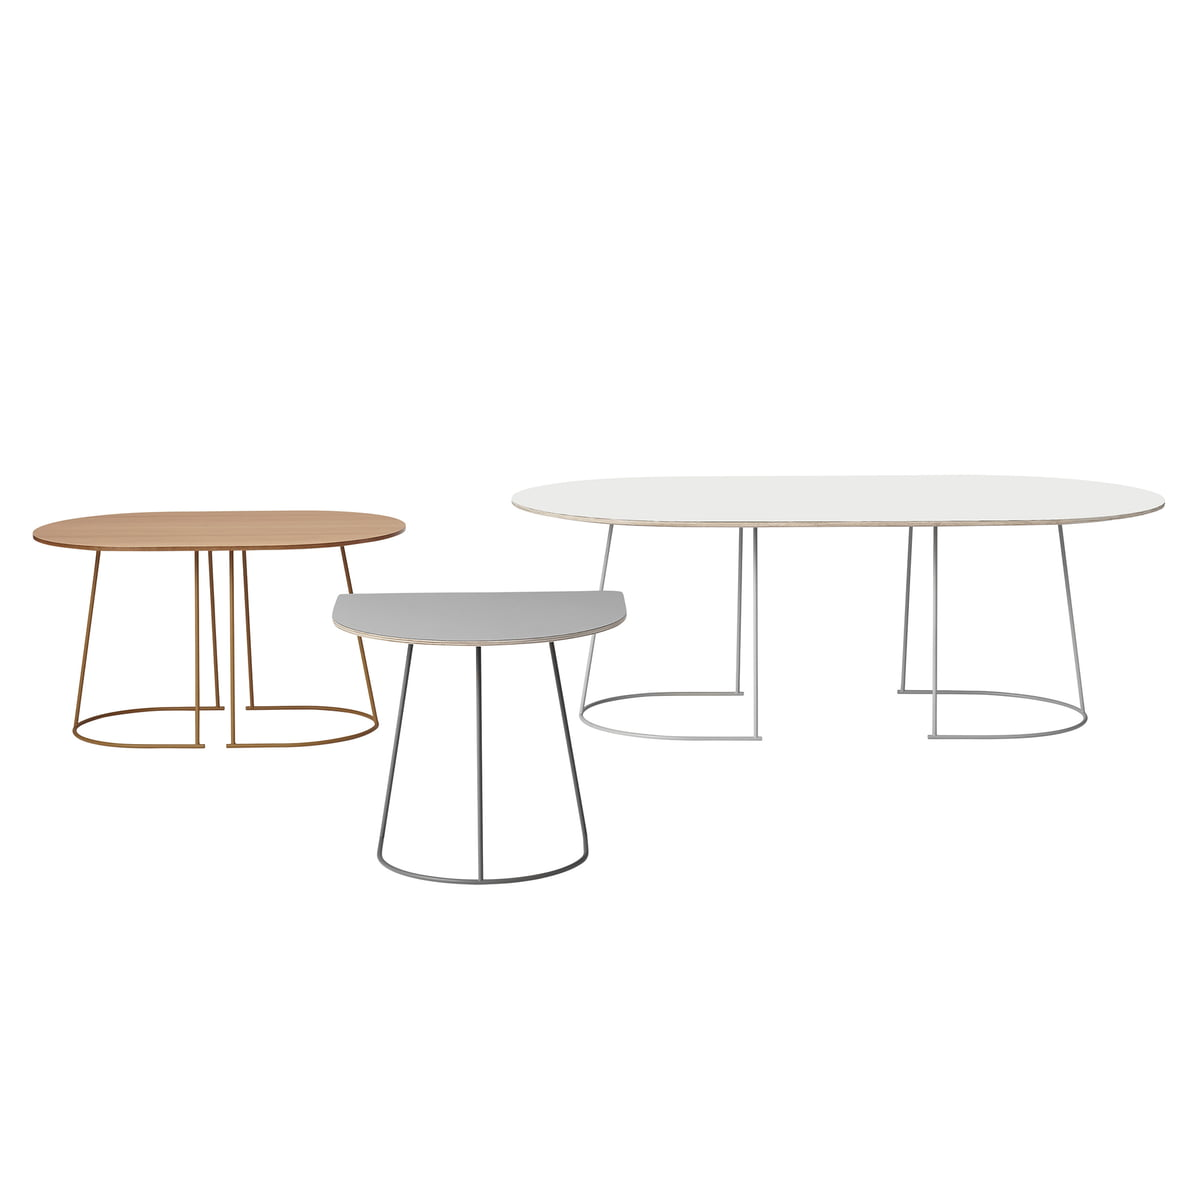 Buy The Airy Coffee Table Online By Muuto